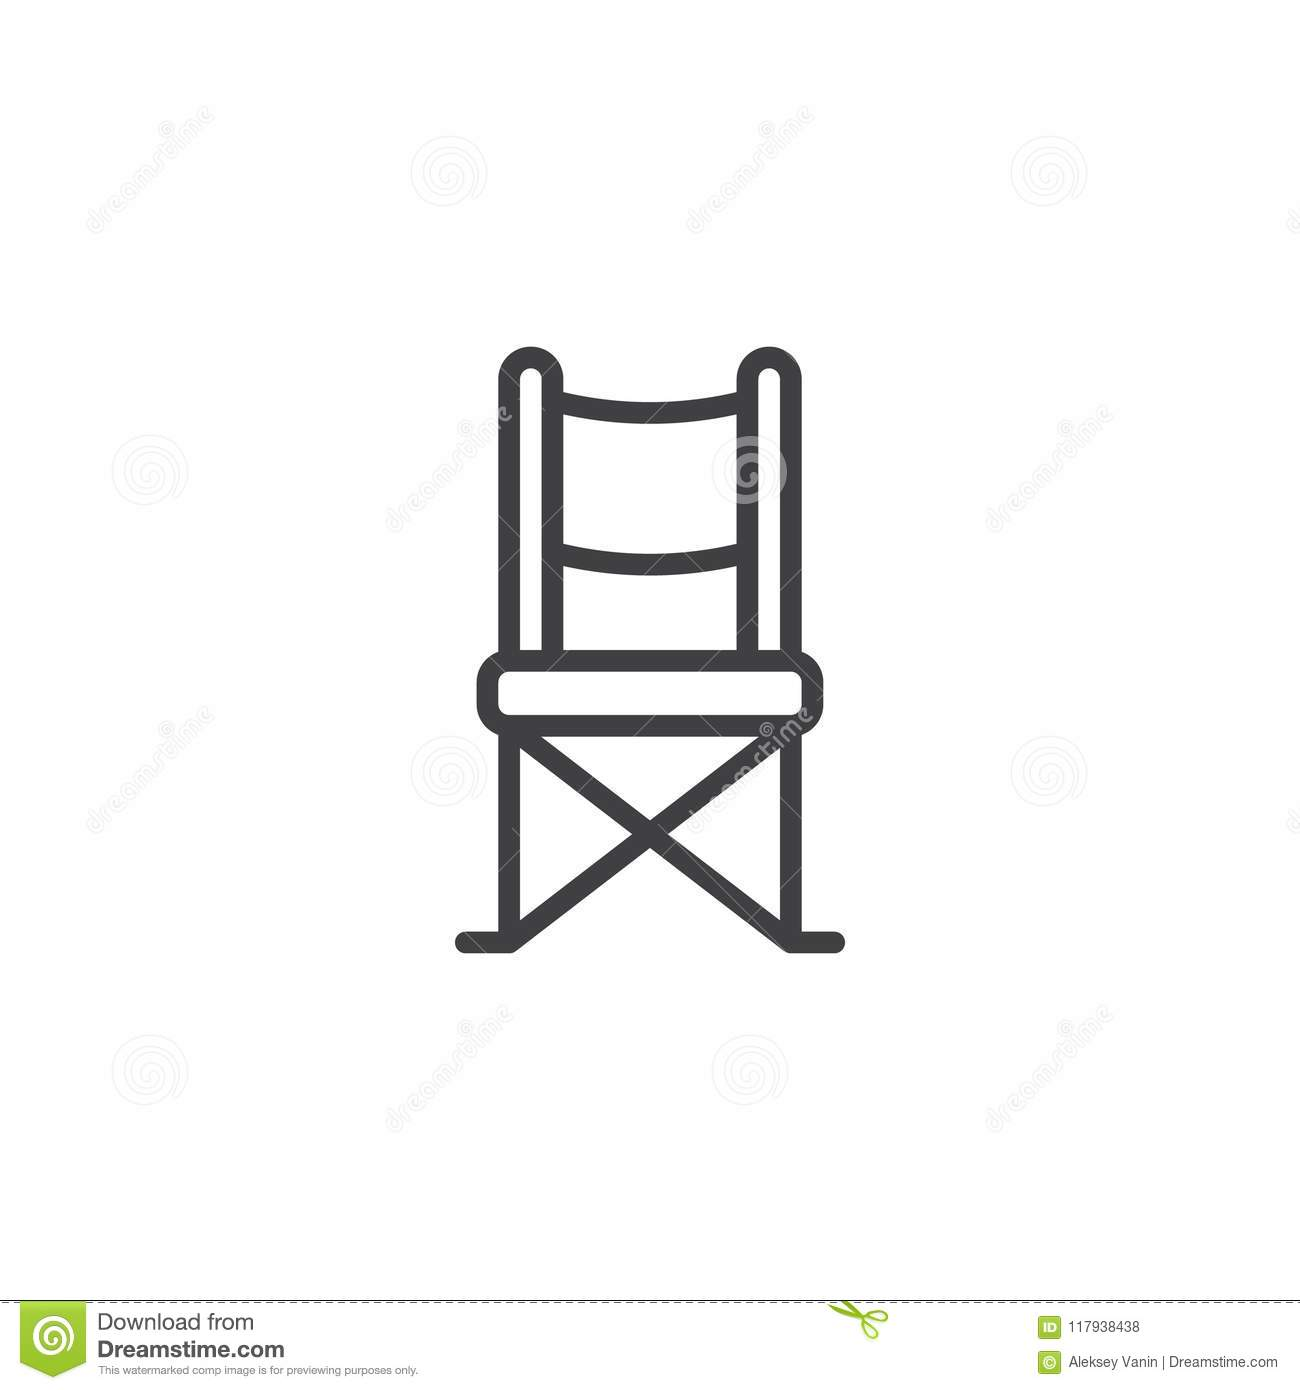 Swell Camping Chair Outline Icon Stock Vector Illustration Of Ncnpc Chair Design For Home Ncnpcorg